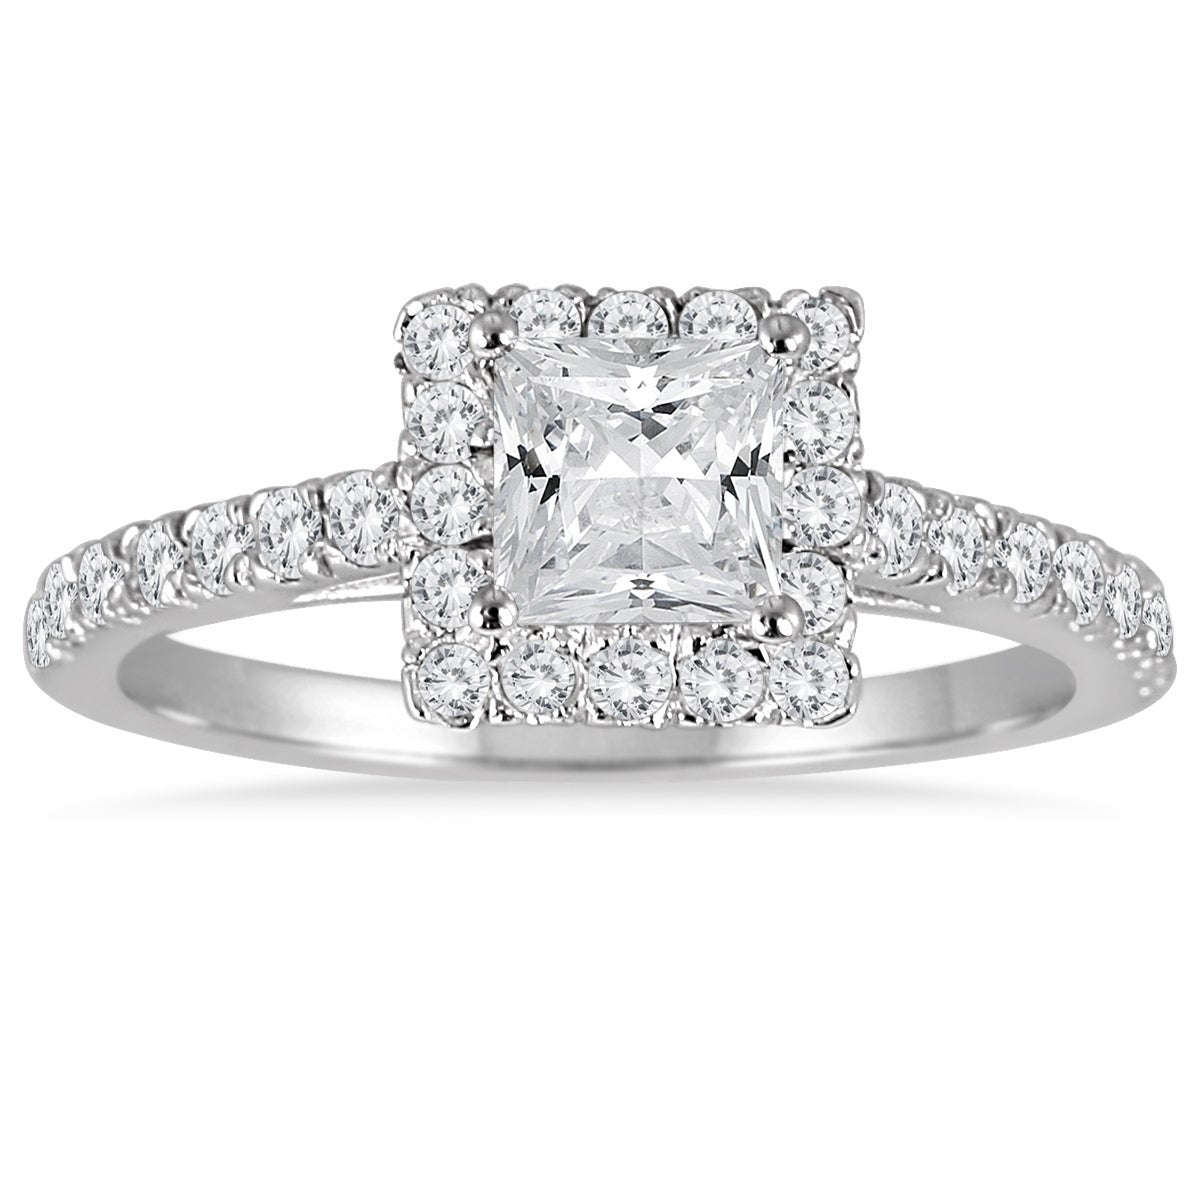 1 Carat Tw Princess Cut Diamond Halo Engagement Ring In 14k White Gold Overstock 20593687